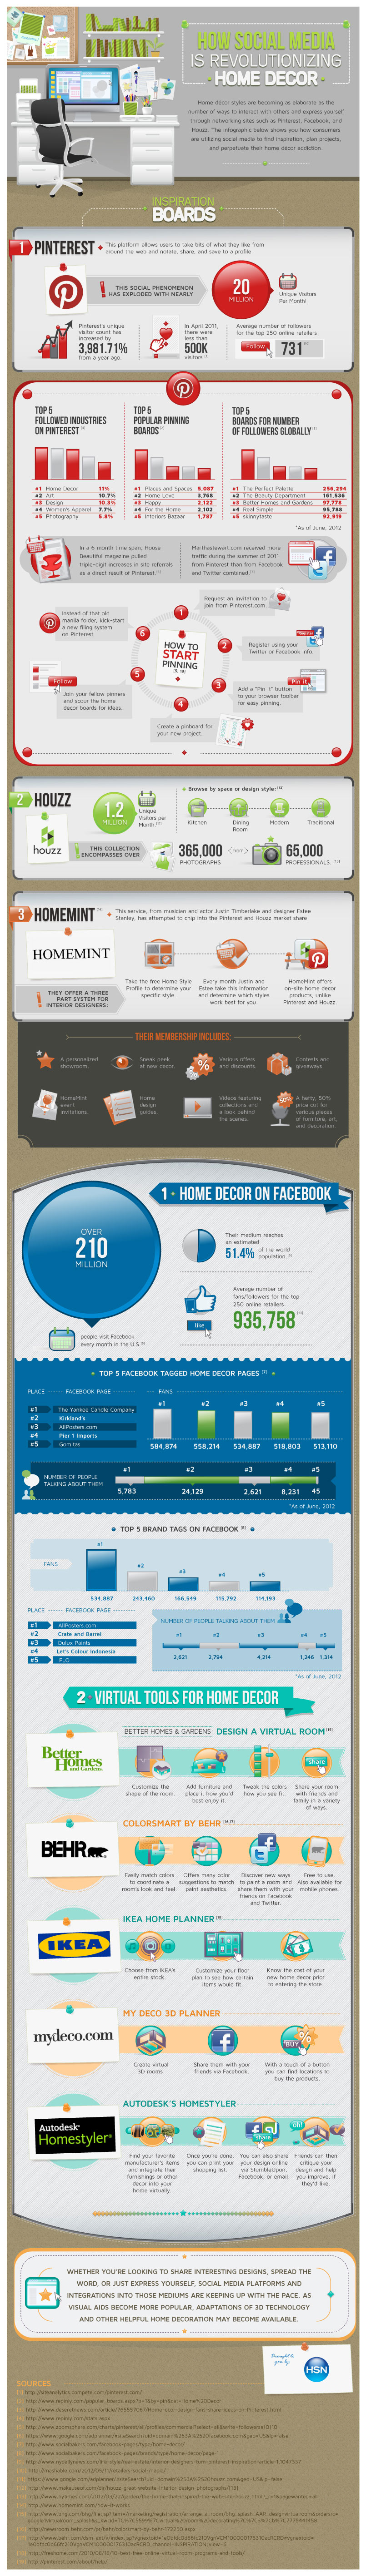 How Social Media Is Revolutionizing Home Decor